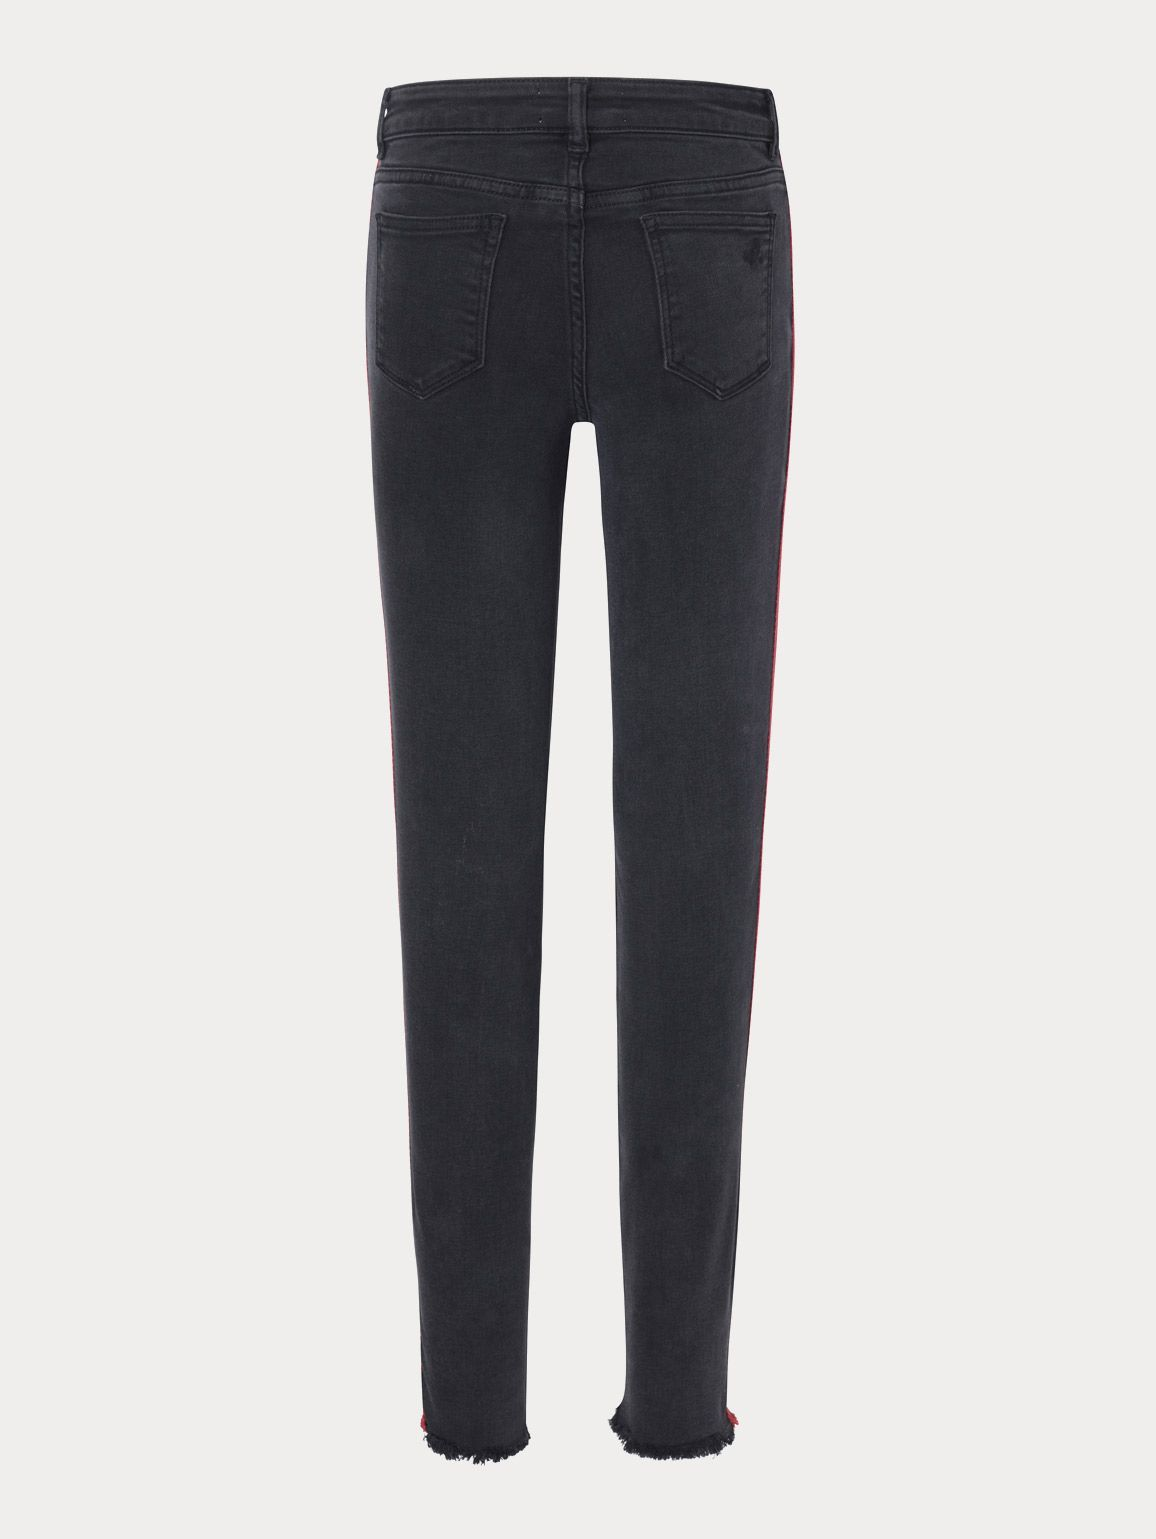 Girls - Chloe Skinny | Pop Black - DL1961